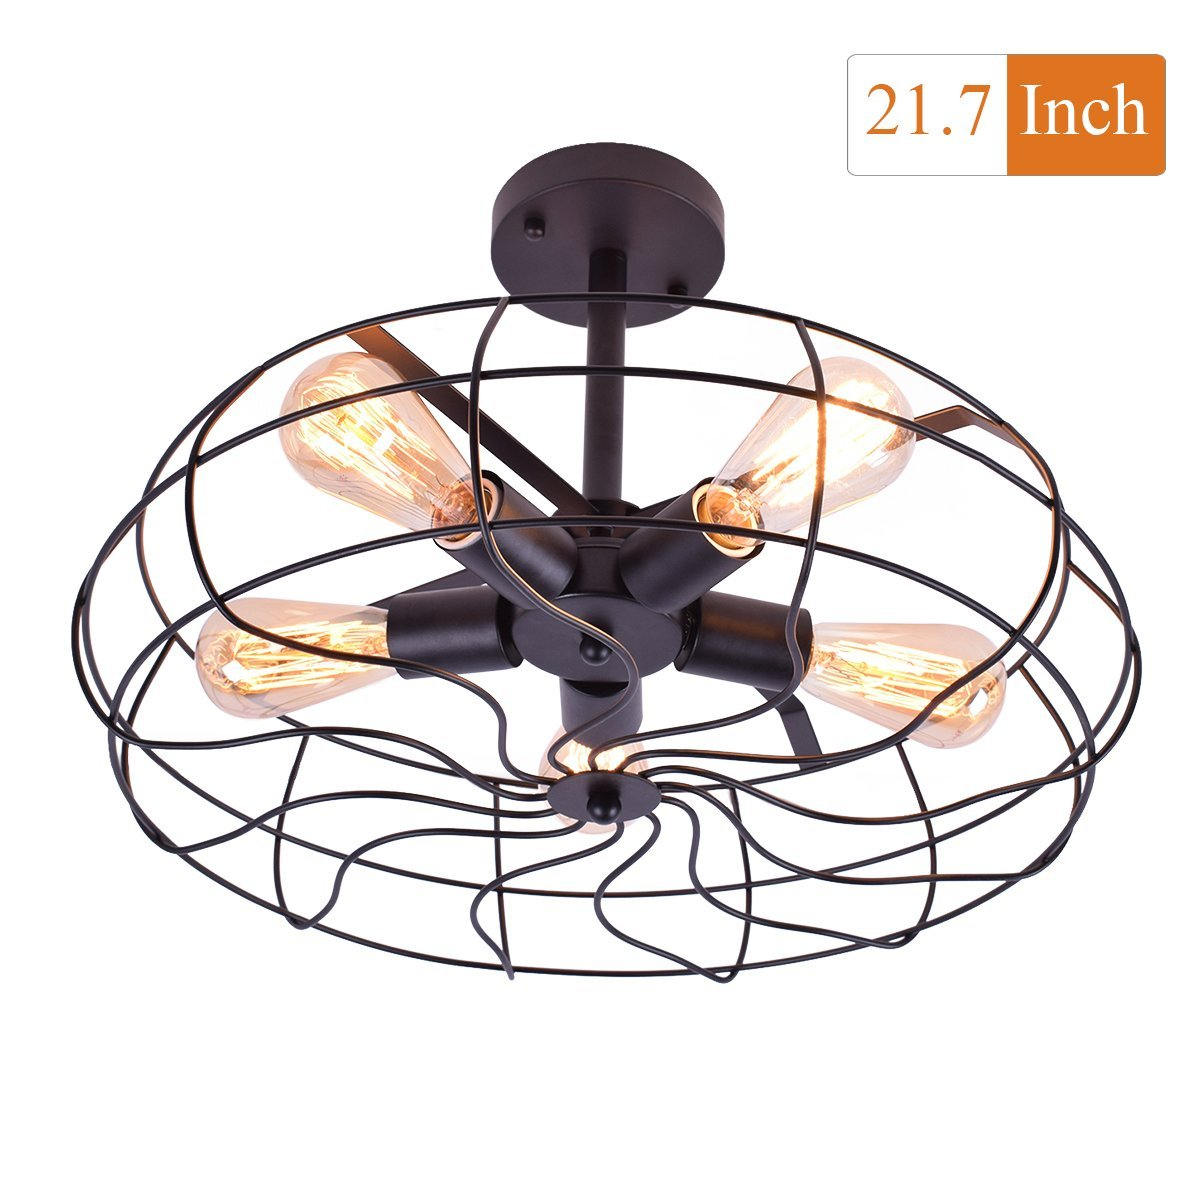 Foyer Ceiling Fan Light : Semi flush mount ceiling lights to enhance room décor